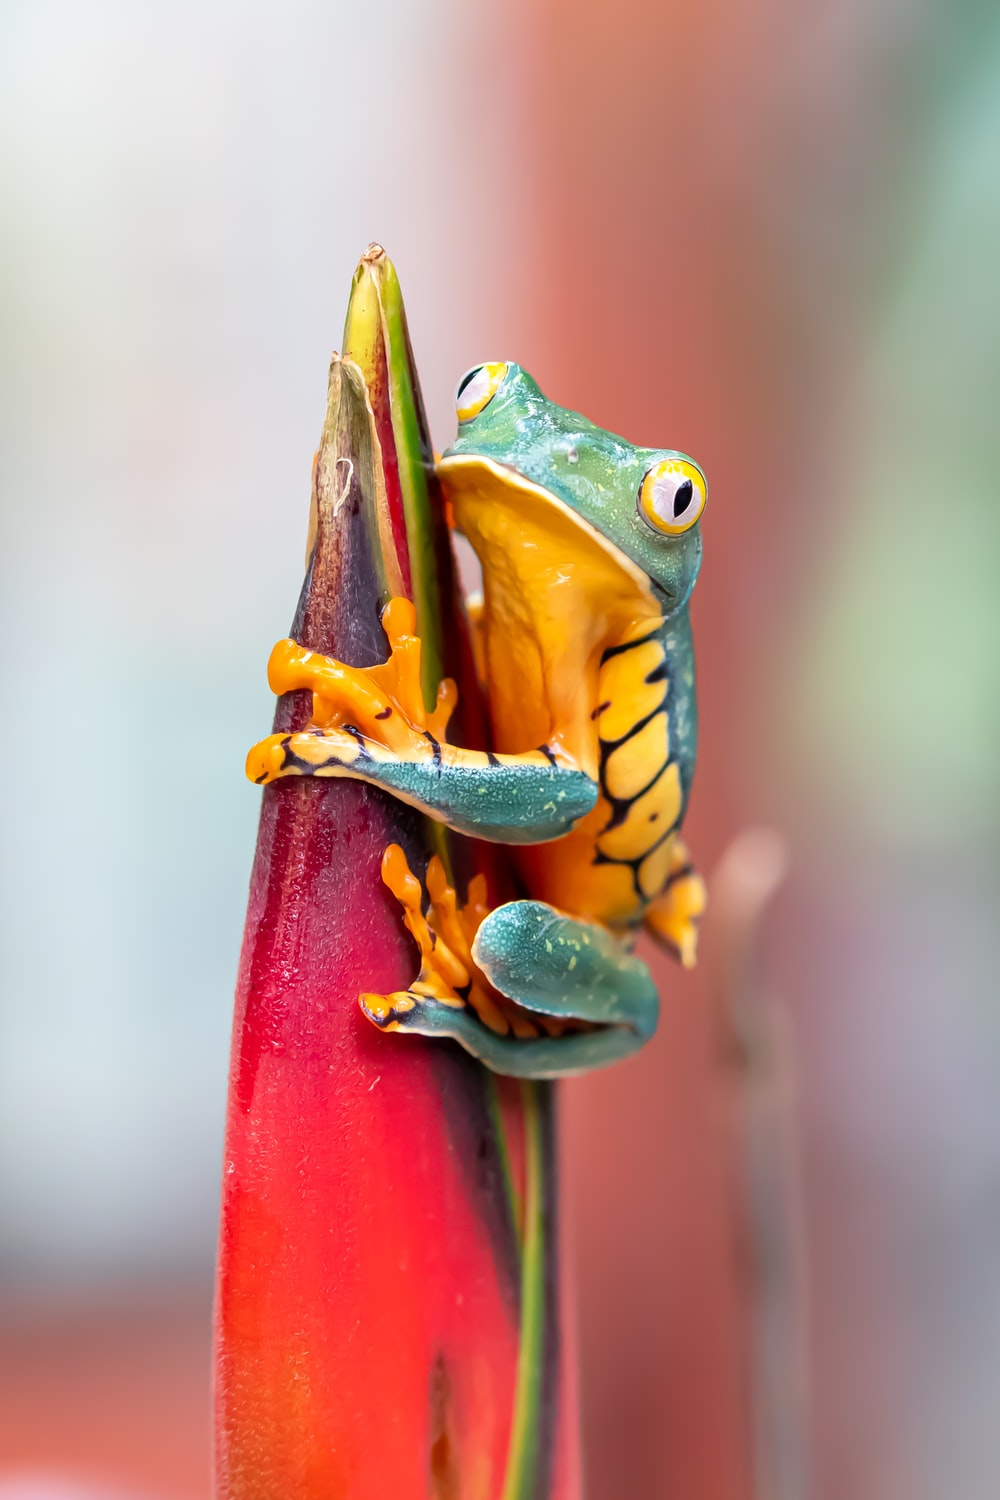 green frog on red post